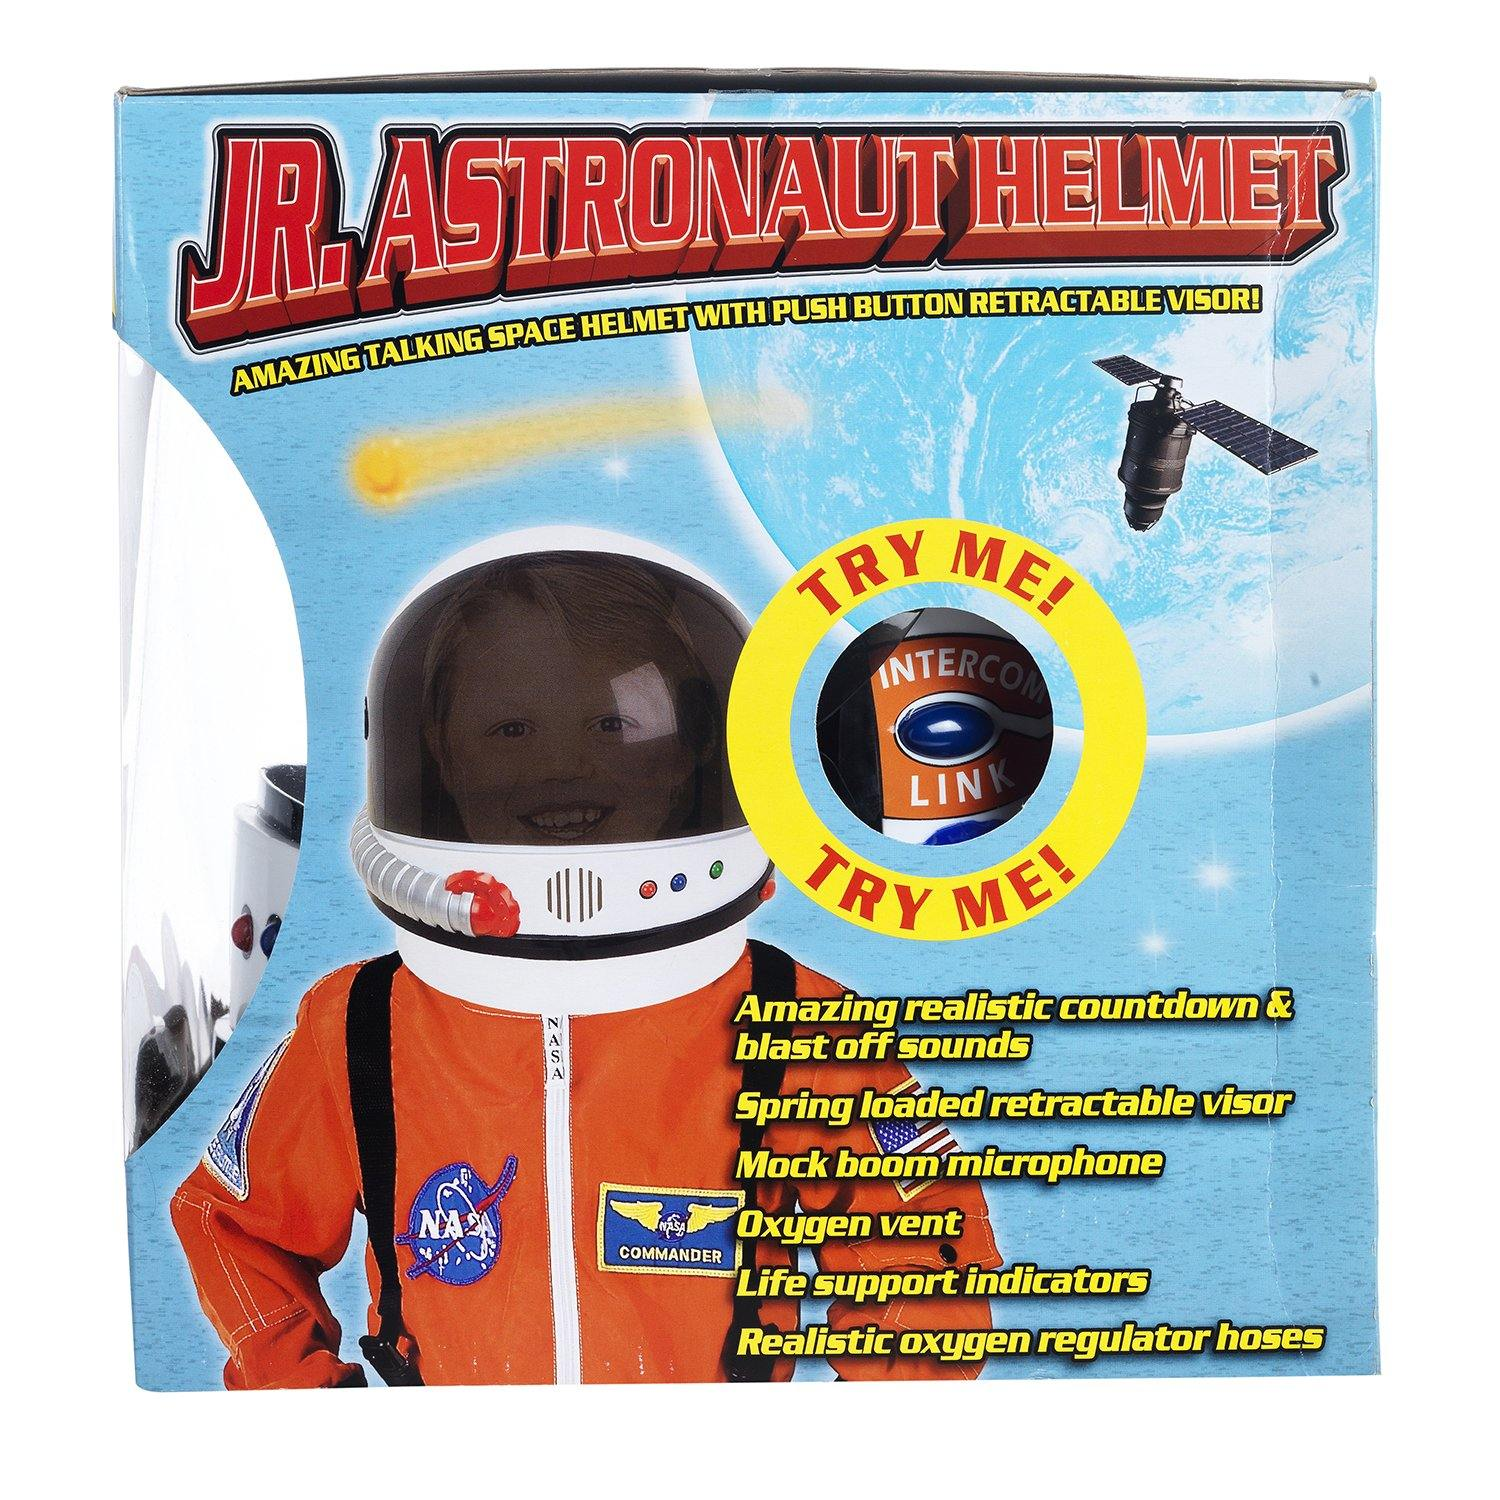 Junior astronaut helmet box